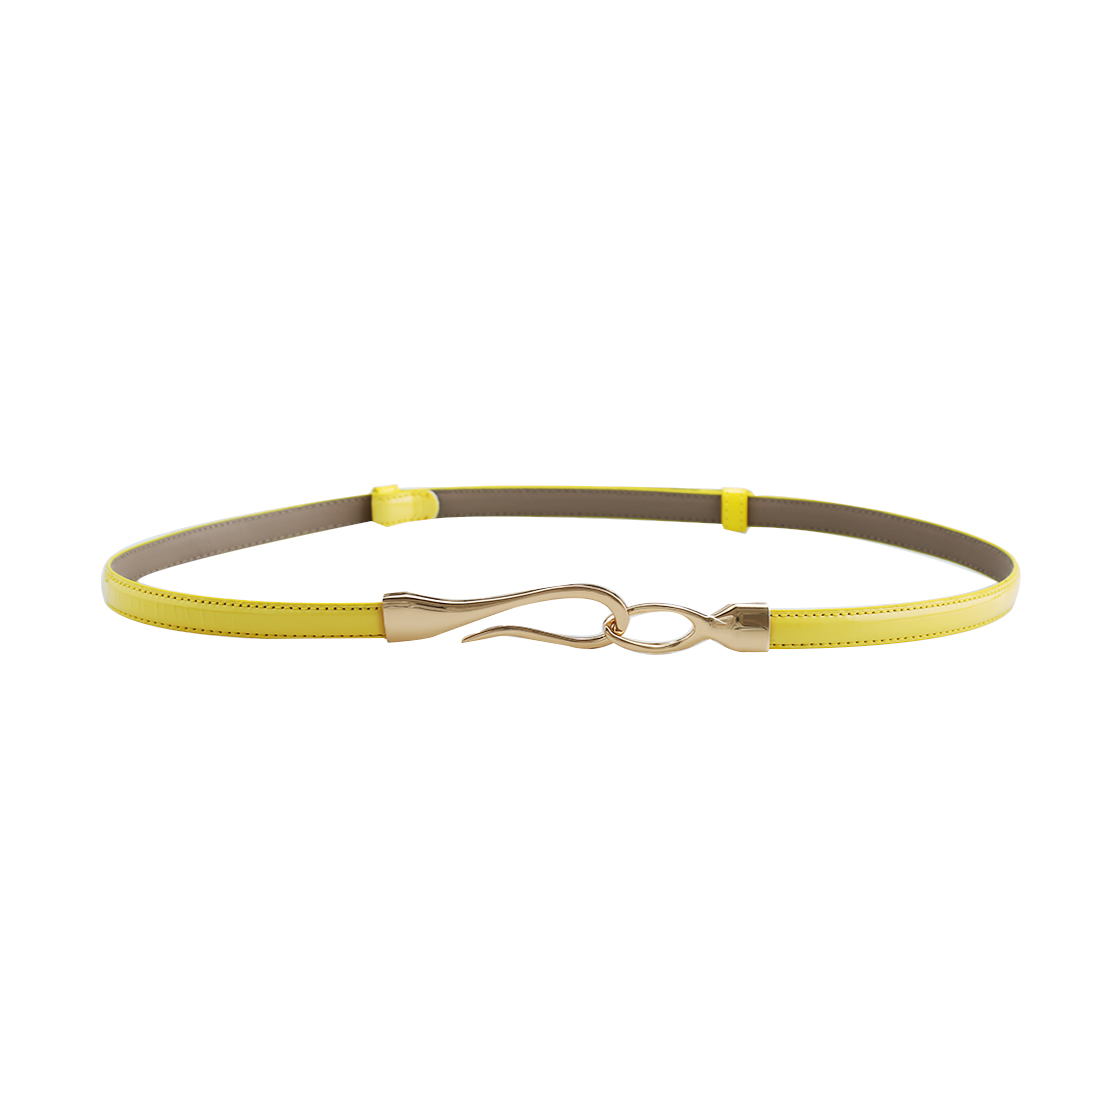 Women Interlocking Buckle Adjustable Slim PU Belt Yellow